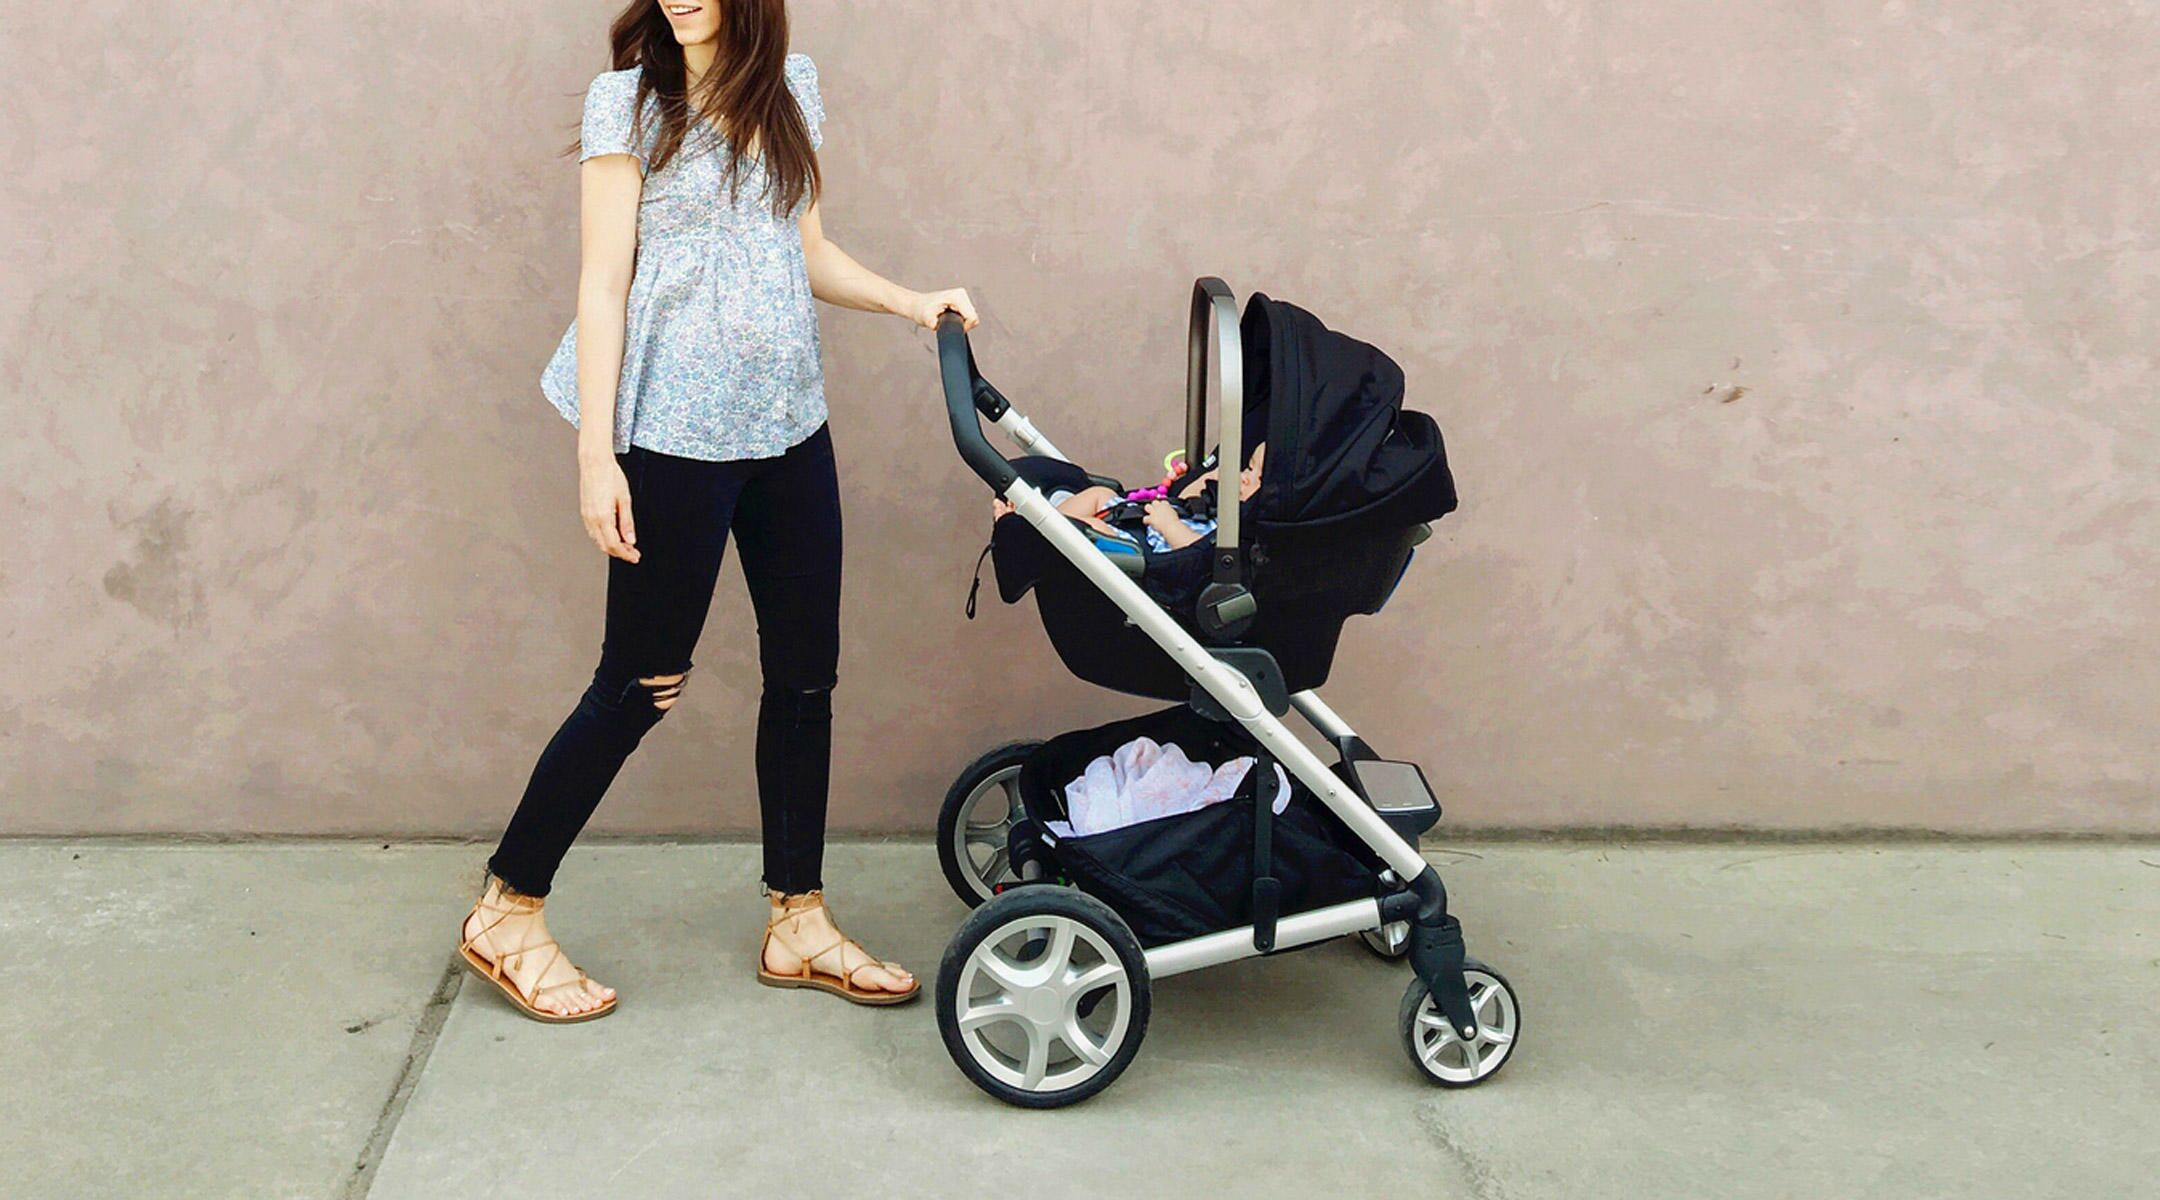 Best Products to Make Moms' Lives Easier